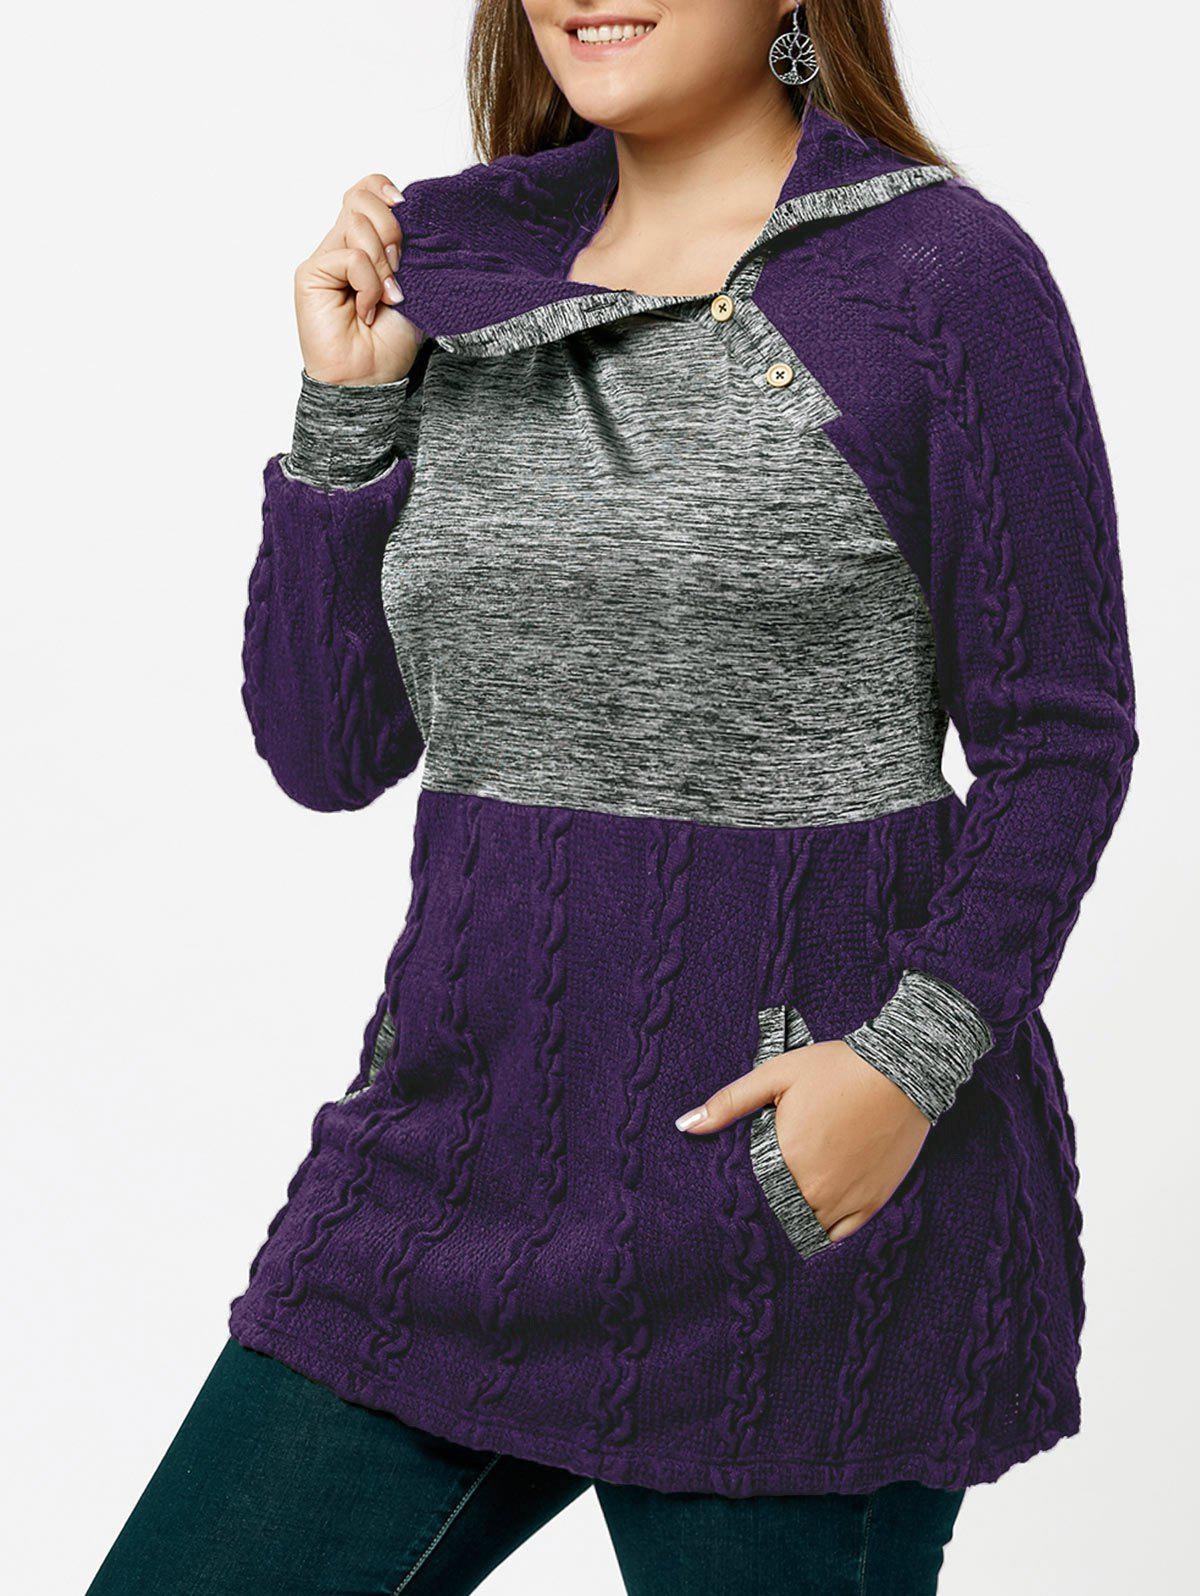 Plus Size Pullover Pockets Cable Knit SweaterWOMEN<br><br>Size: 5XL; Color: PURPLE; Type: Pullovers; Material: Polyester,Spandex; Sleeve Length: Full; Collar: Turn-down Collar; Technics: Computer Knitted; Style: Casual; Season: Fall,Spring,Winter; Pattern Type: Others; Weight: 0.5000kg; Package Contents: 1 x Sweater;